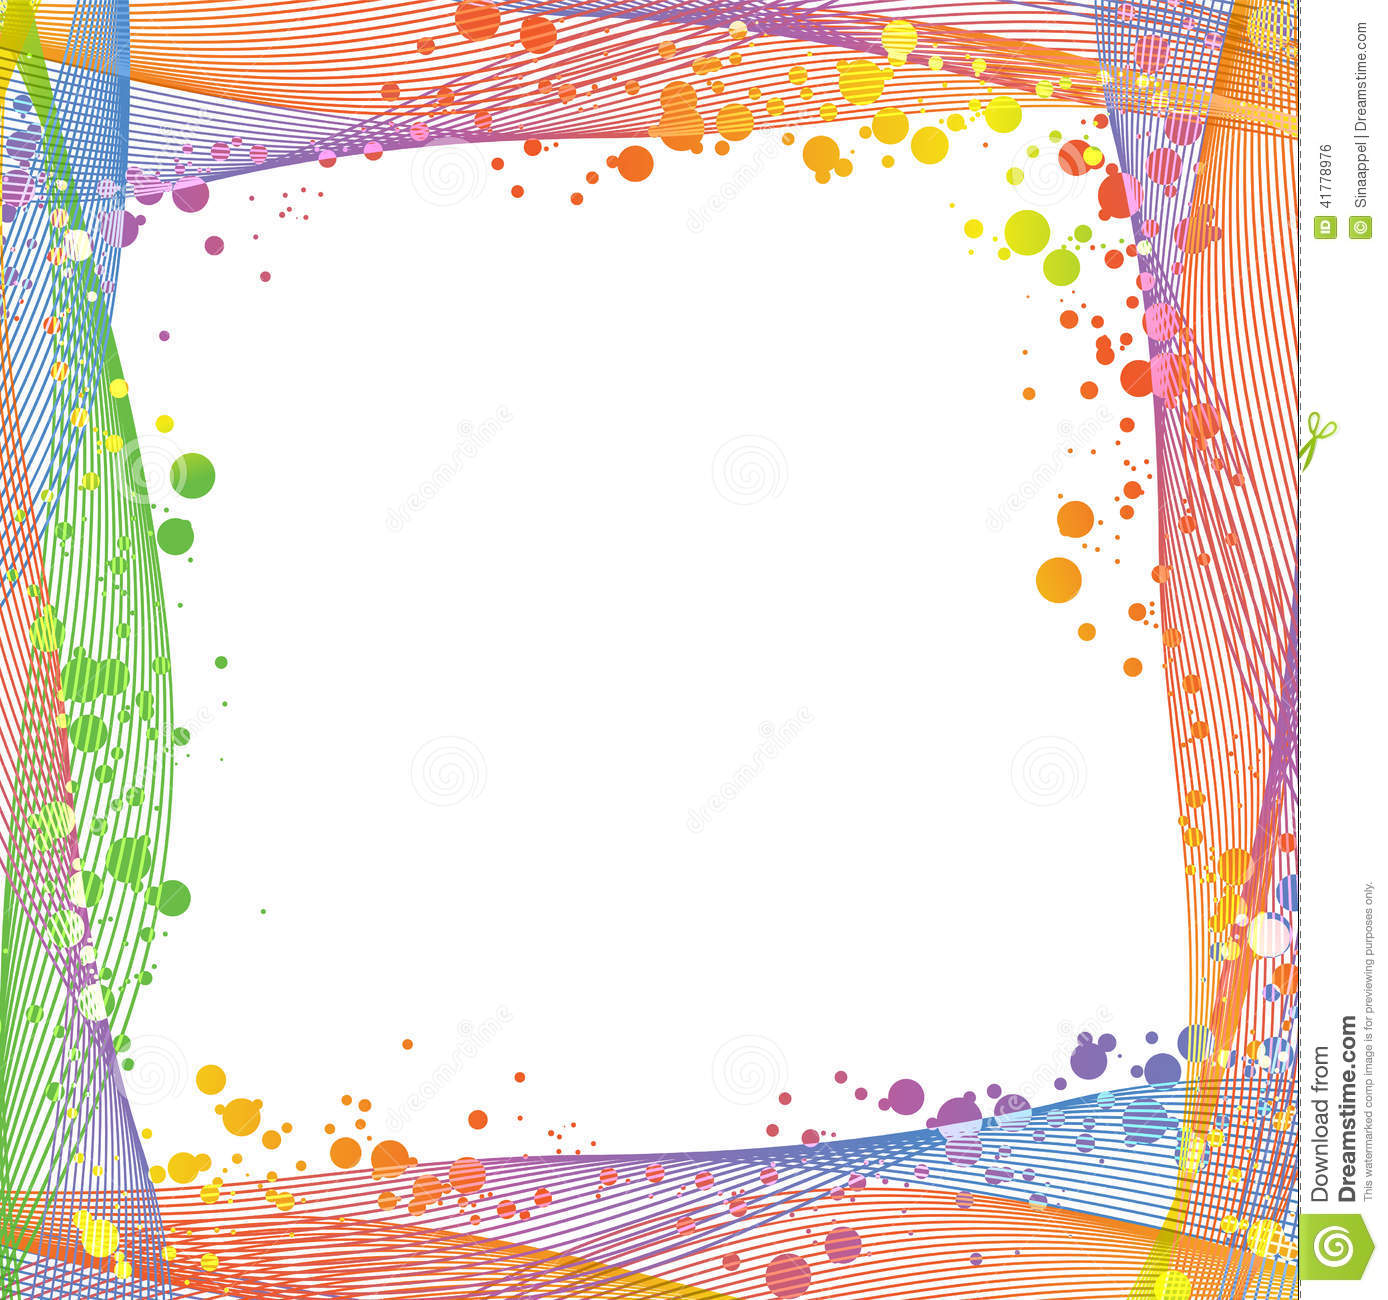 Colorful Frame Vector - Clipart Vector Design •